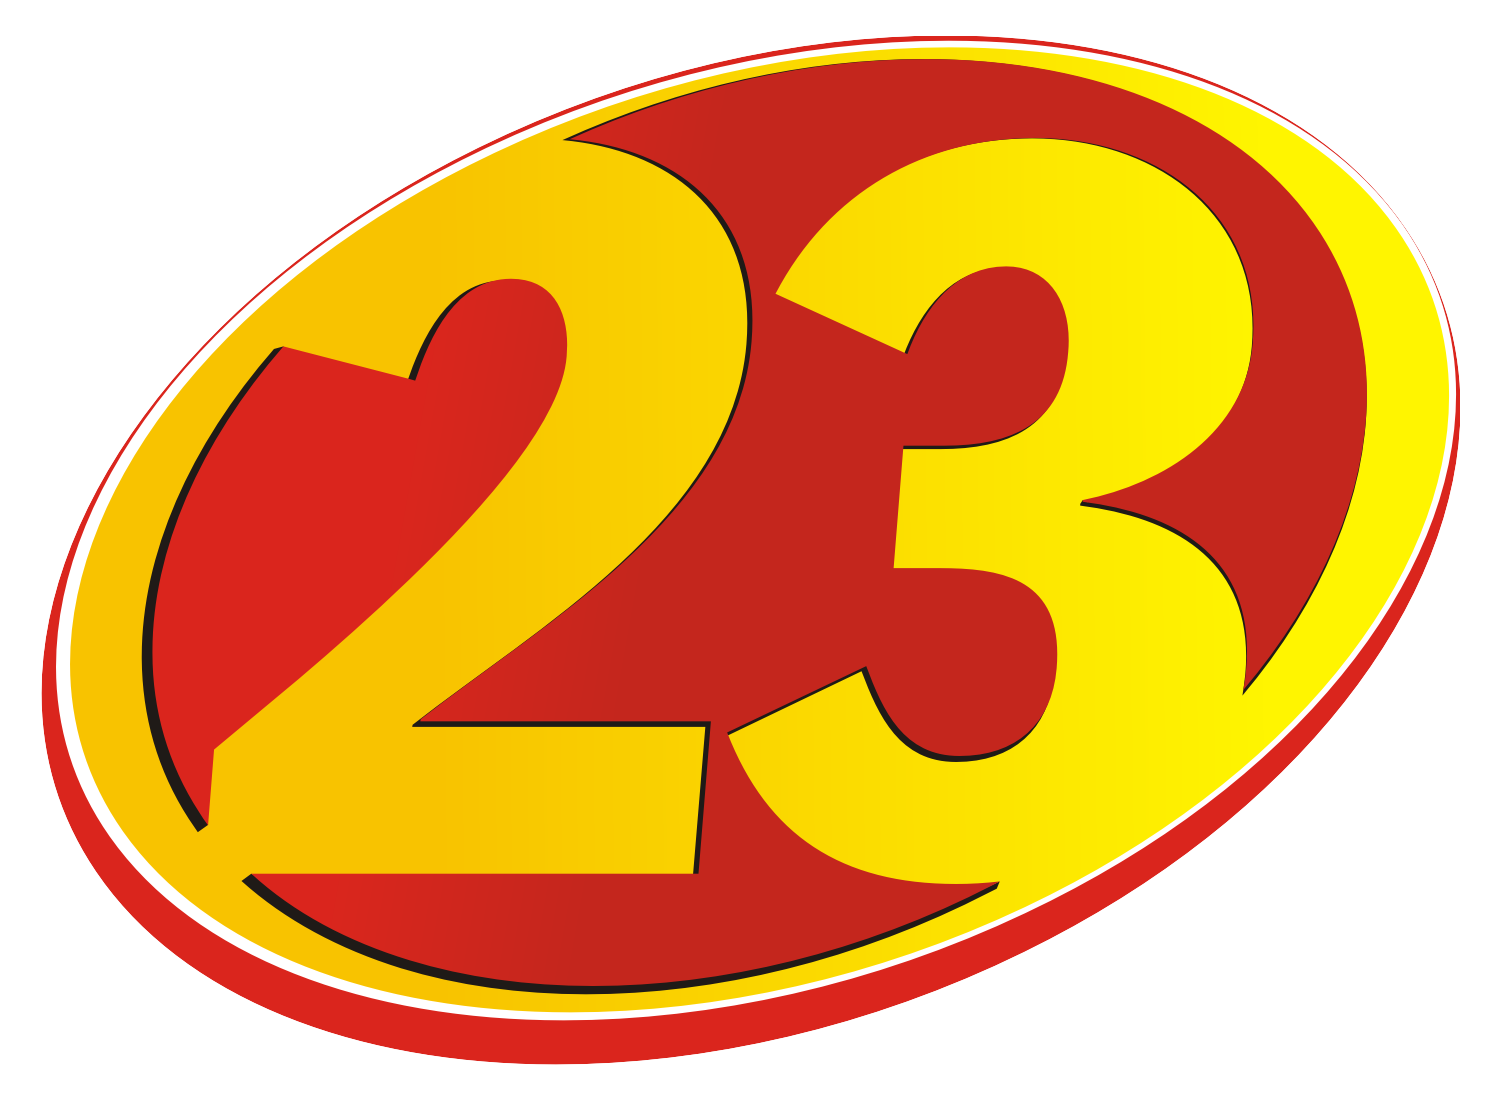 Pps 23 png 7 » PNG Image.